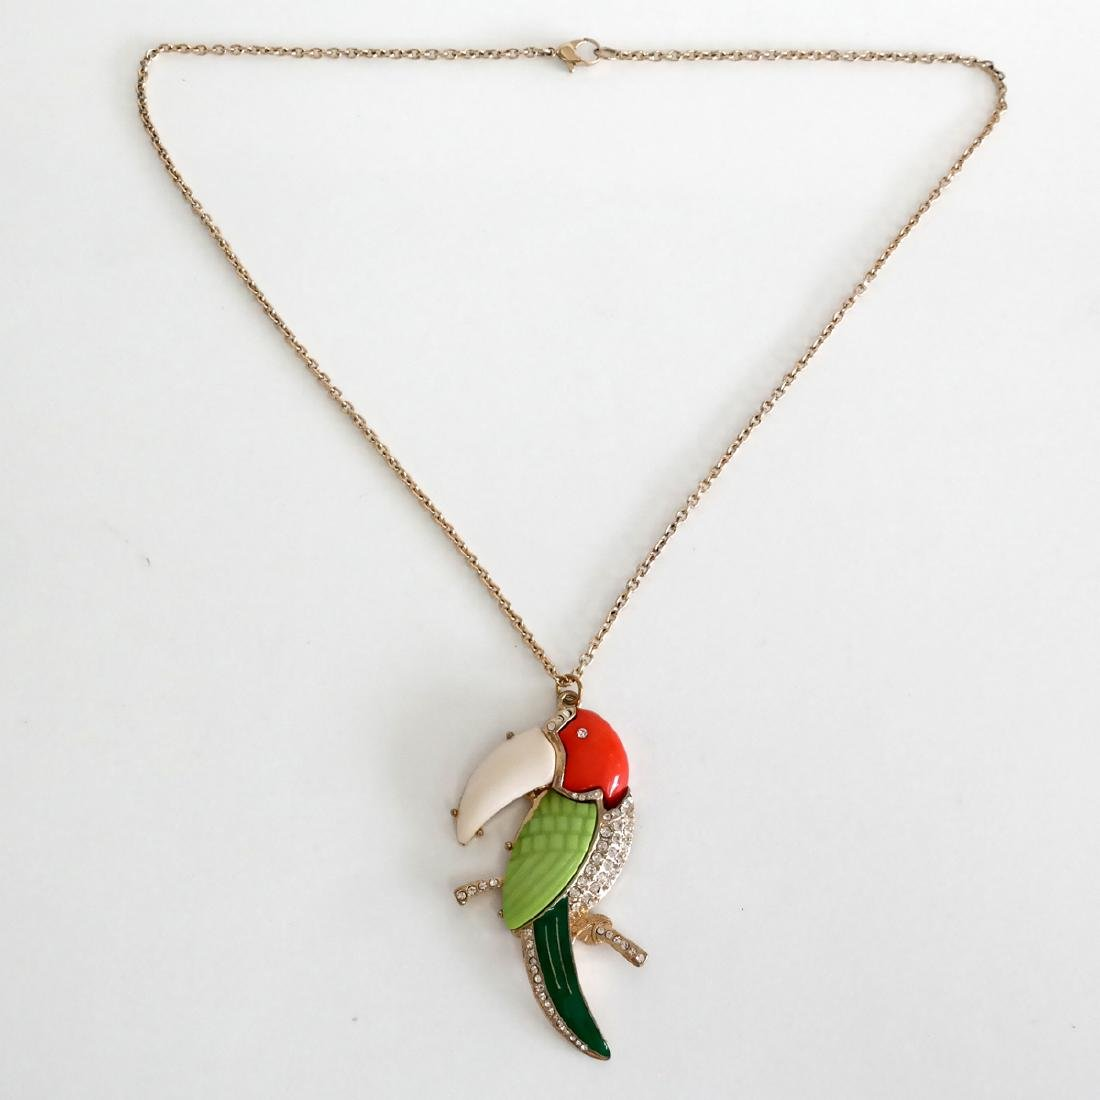 Gold plated PARROT shape pendant and chain with lobster - 2